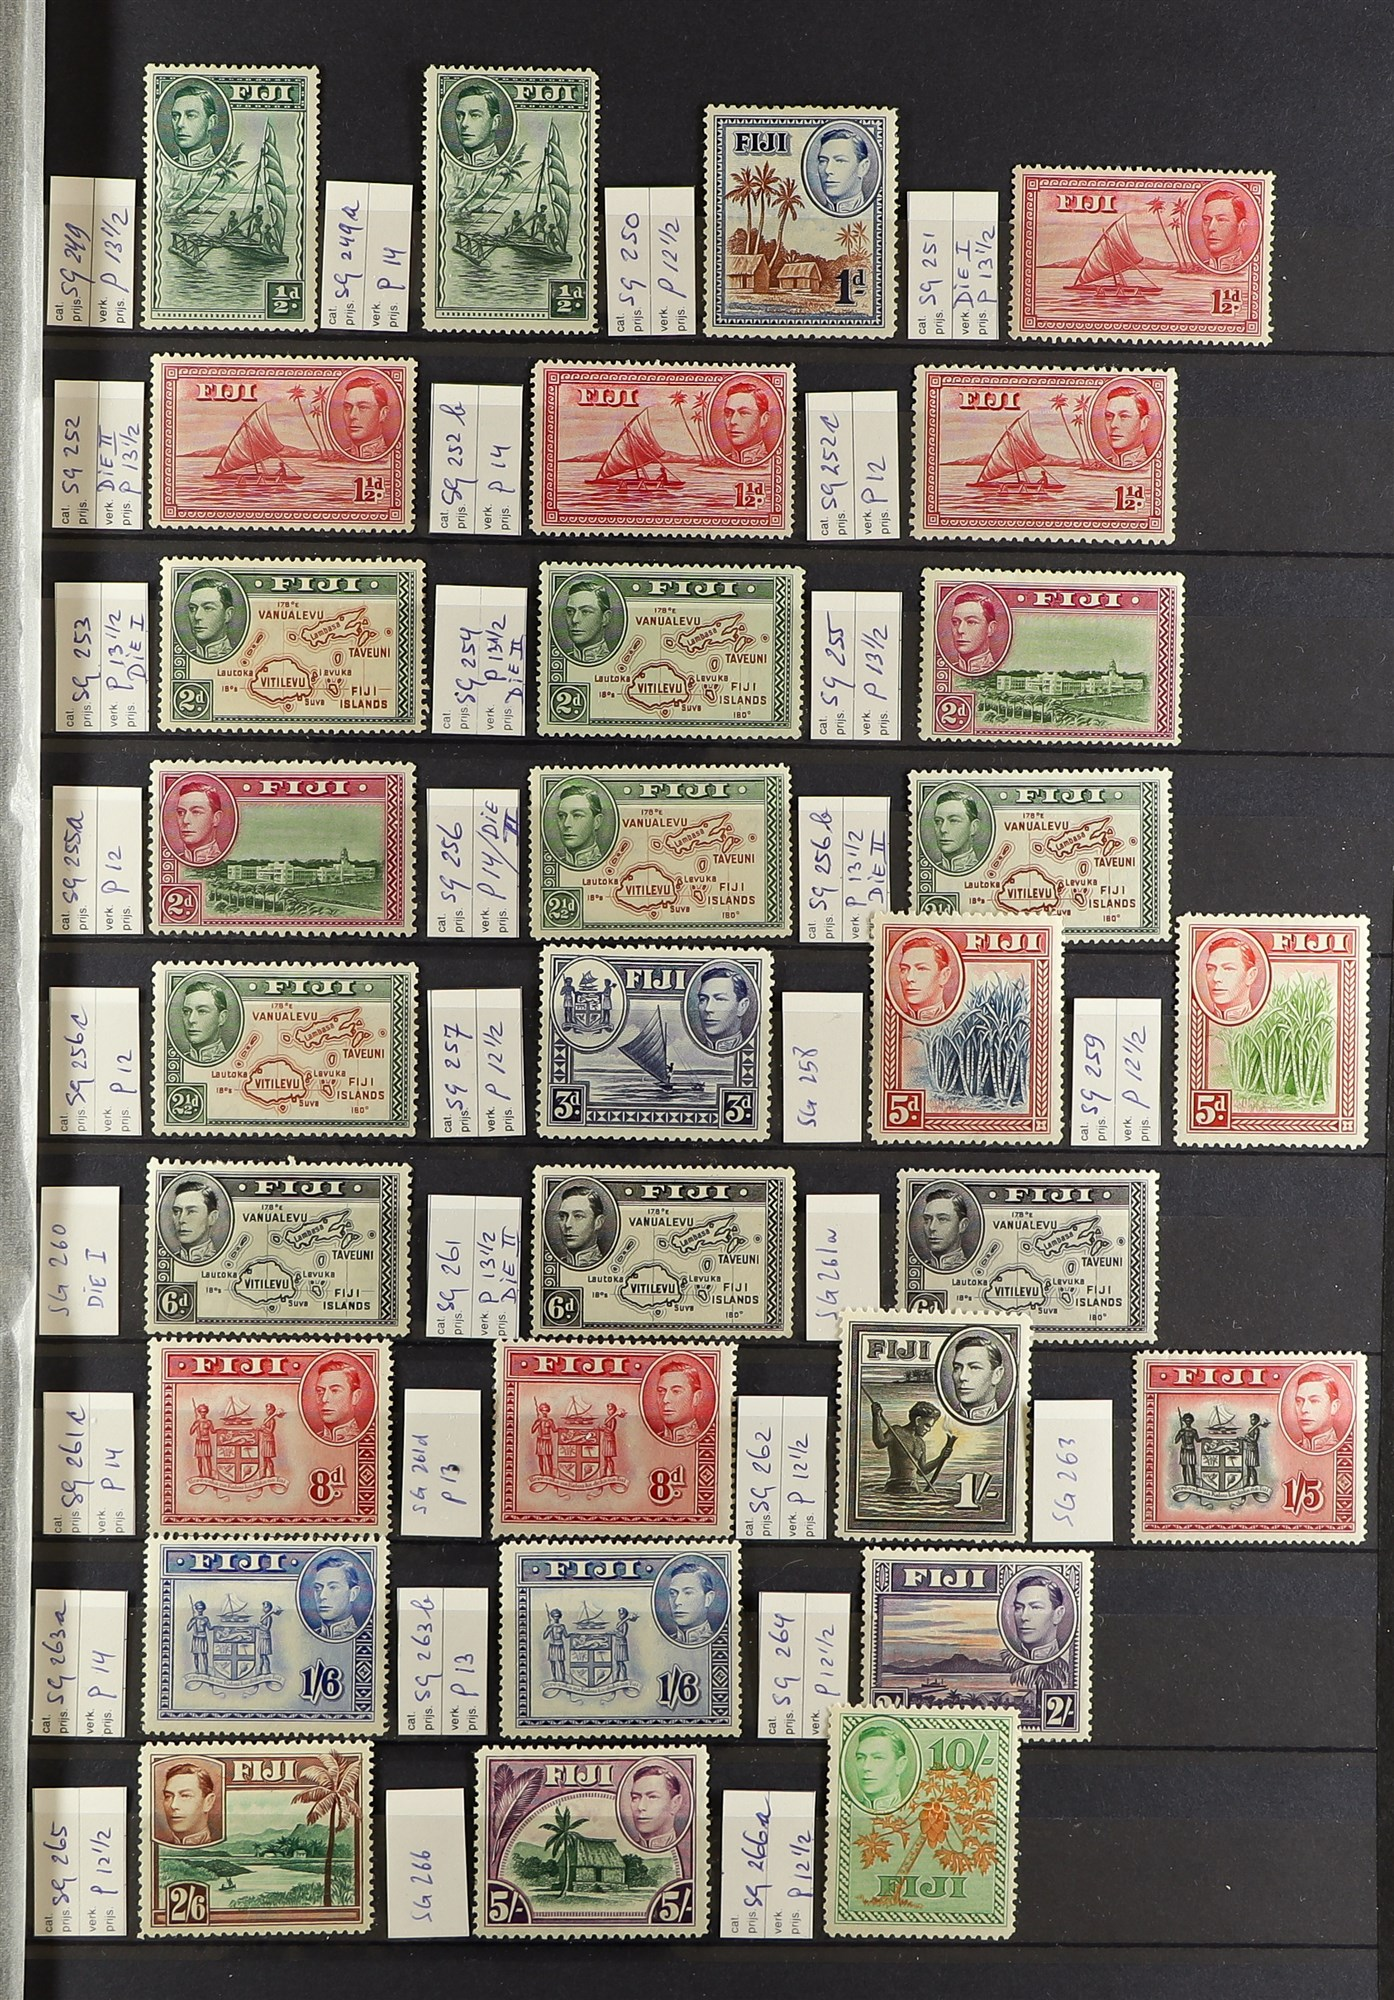 FIJI 1903-70 FINE MINT COLLECTION incl. 1903 set to 5d (excl. ½d), 1904-09 ½d & 1d, 1906-12 to 2½ - Image 3 of 9